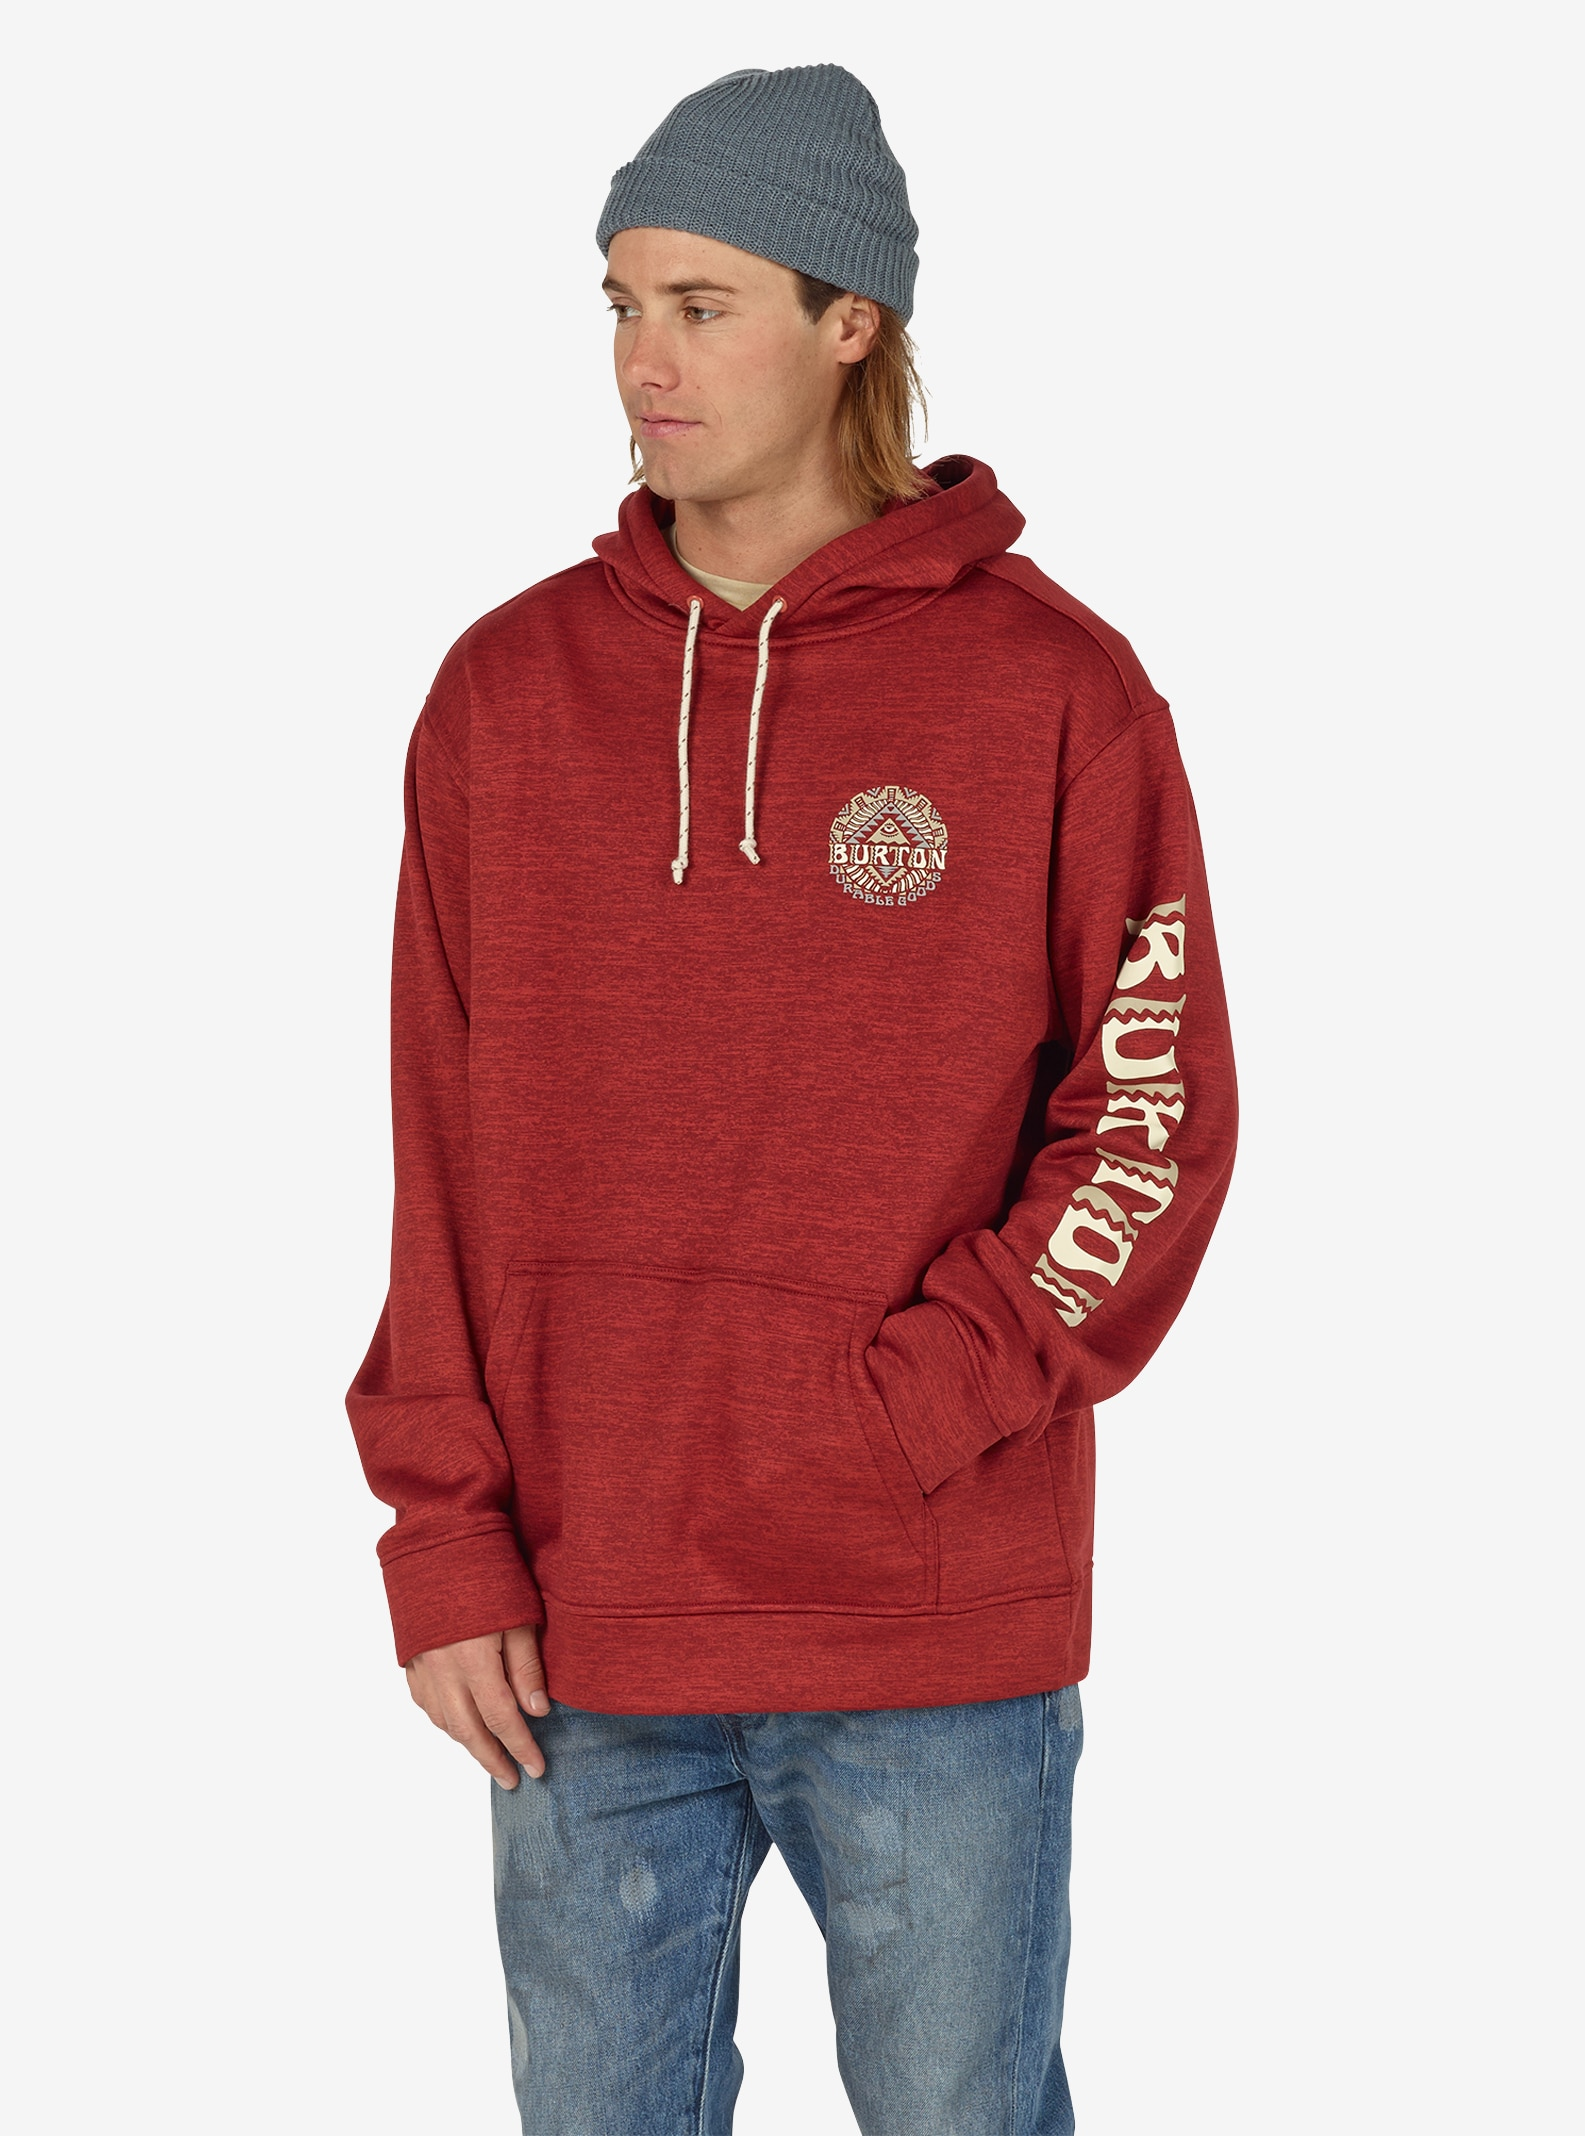 Men's Burton Oak Pullover Hoodie shown in Tandori Heather